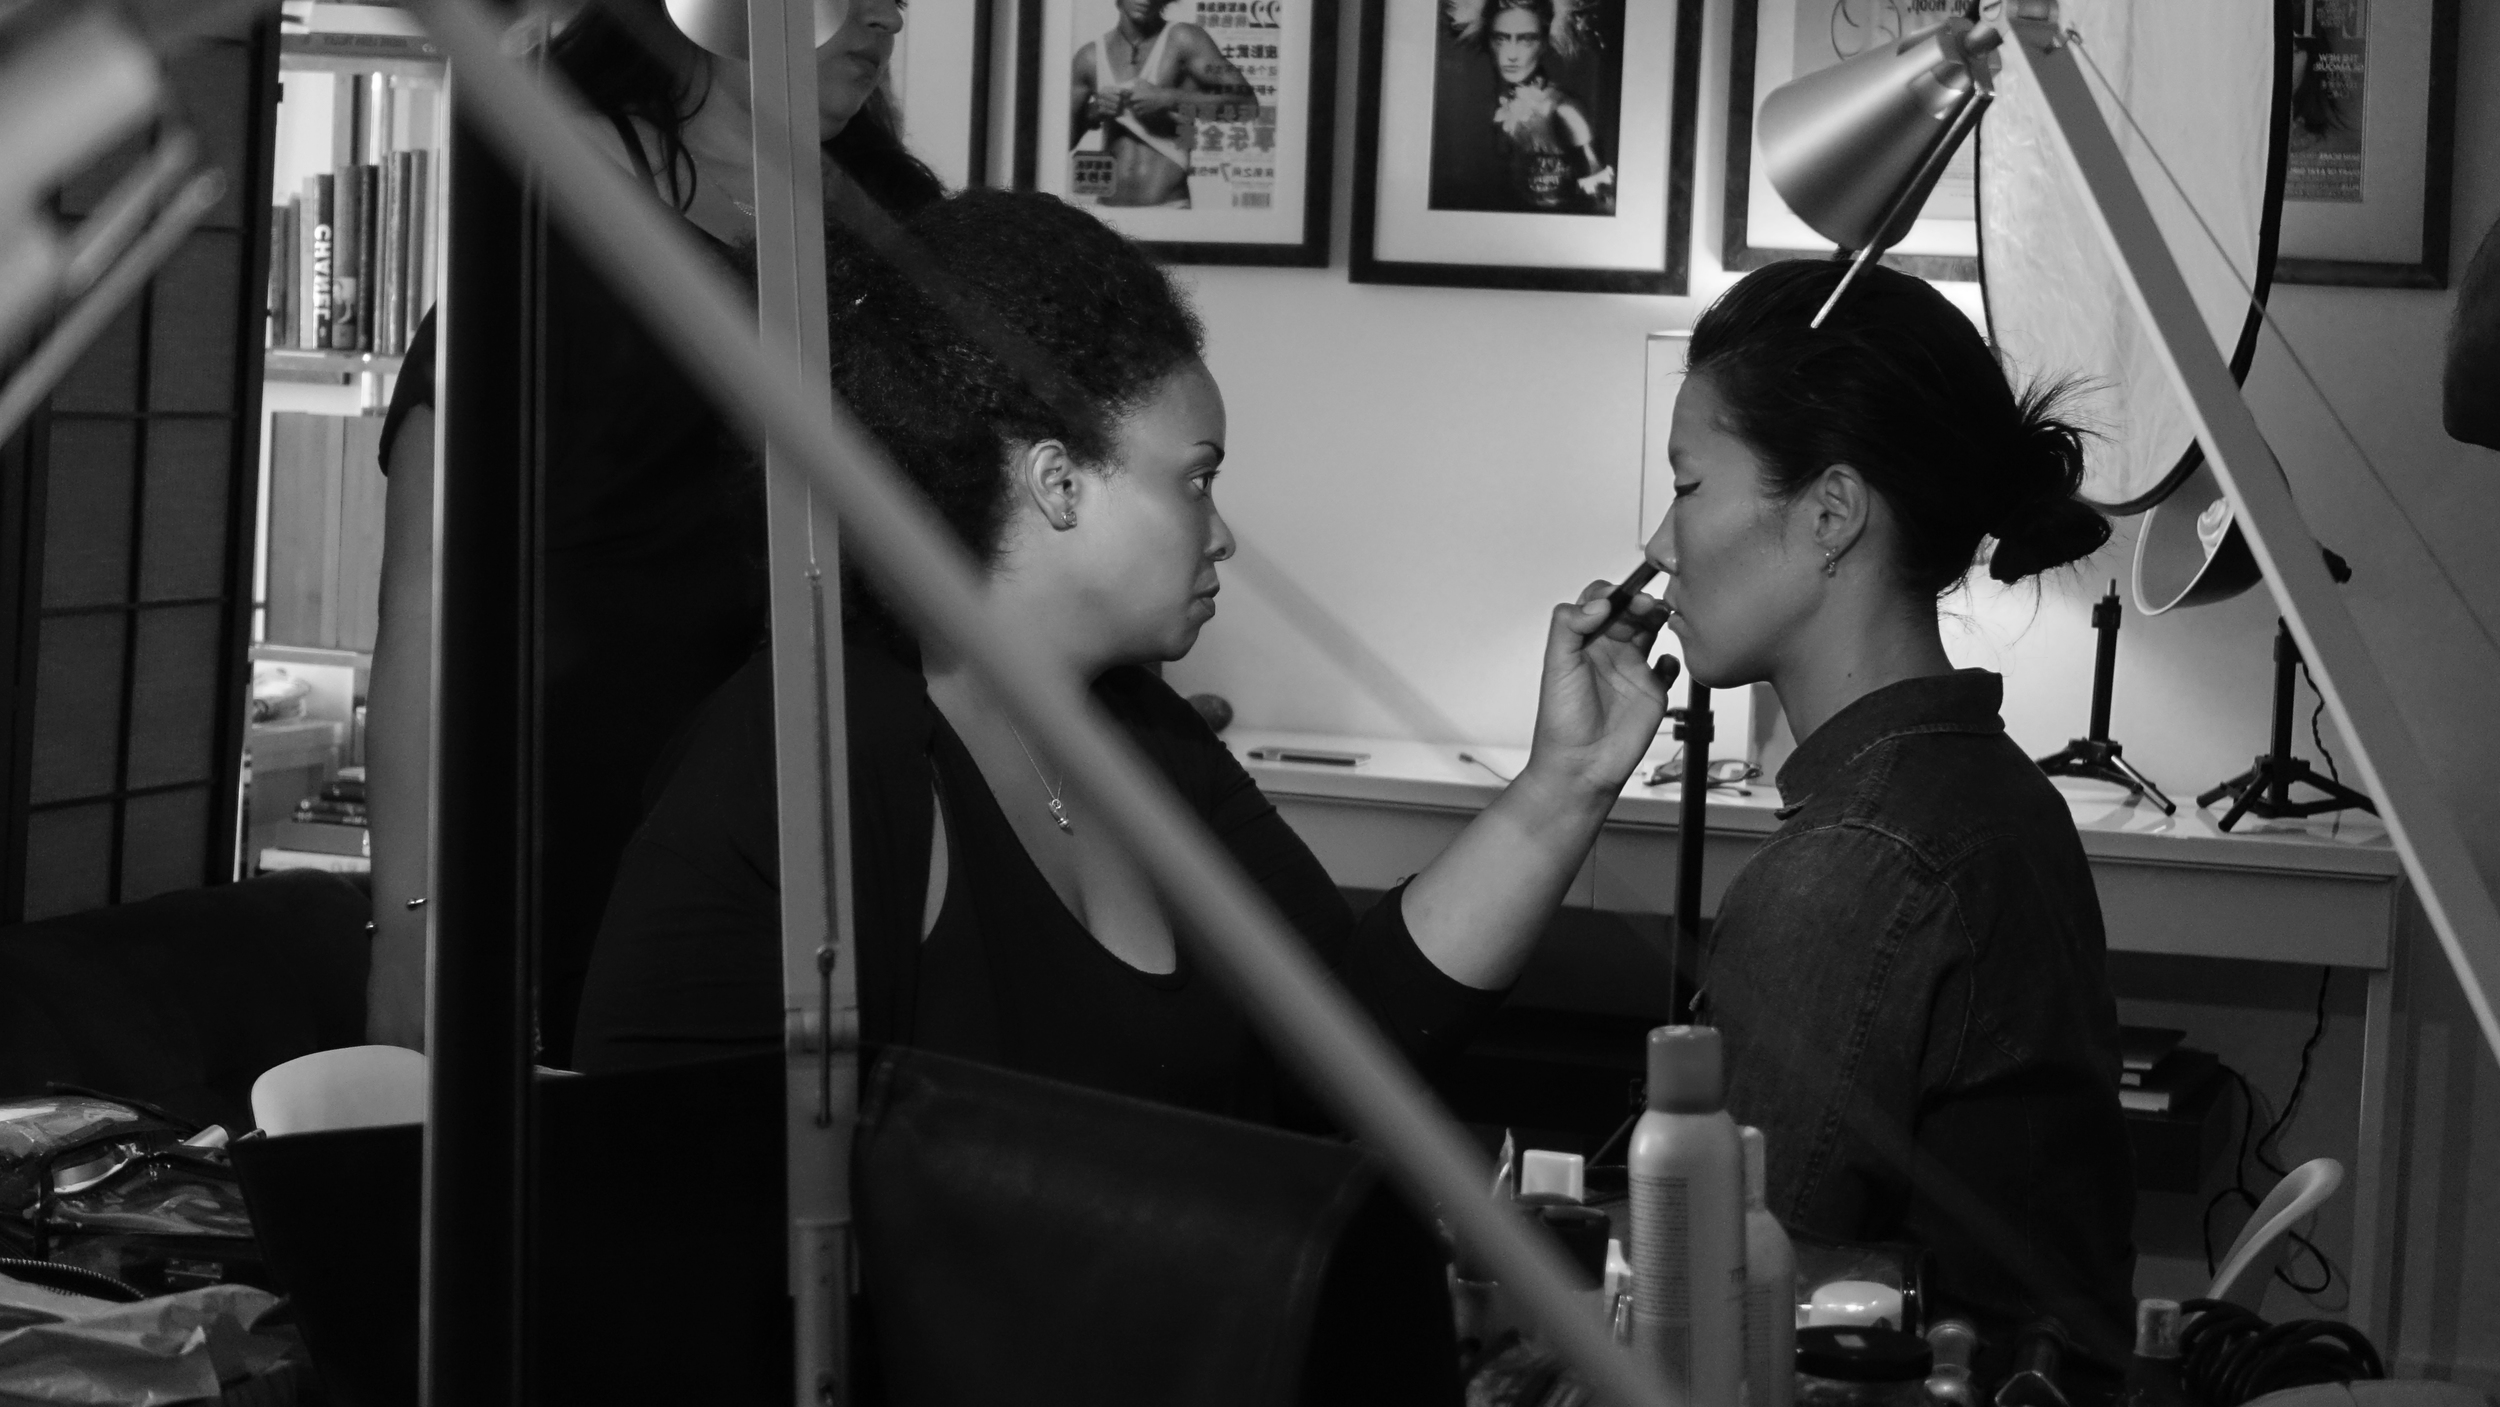 Makeup artist Griselle Rosario and Model Riji Suh on the set of StarChild August 28, 2015. Photo by Simon Alcantara